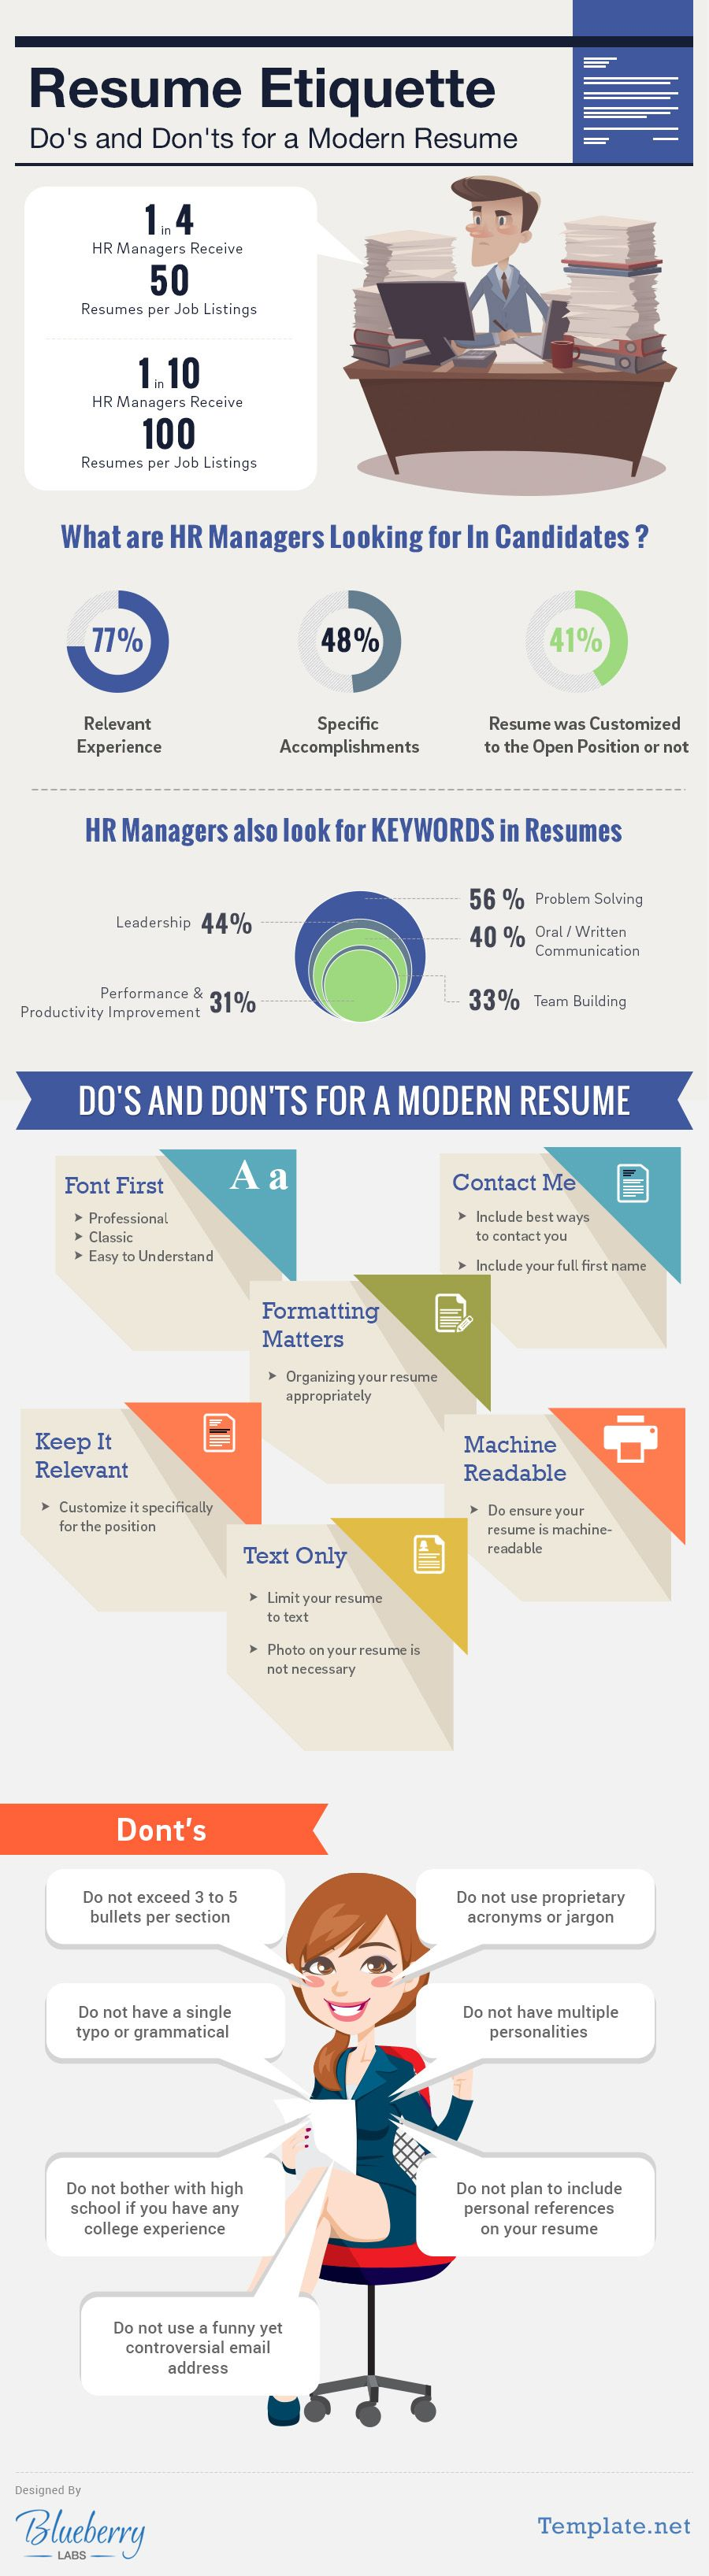 Resume Etiquette Dos And Don Ts Infographic Resume Writing Tips Job Resume Resume Tips